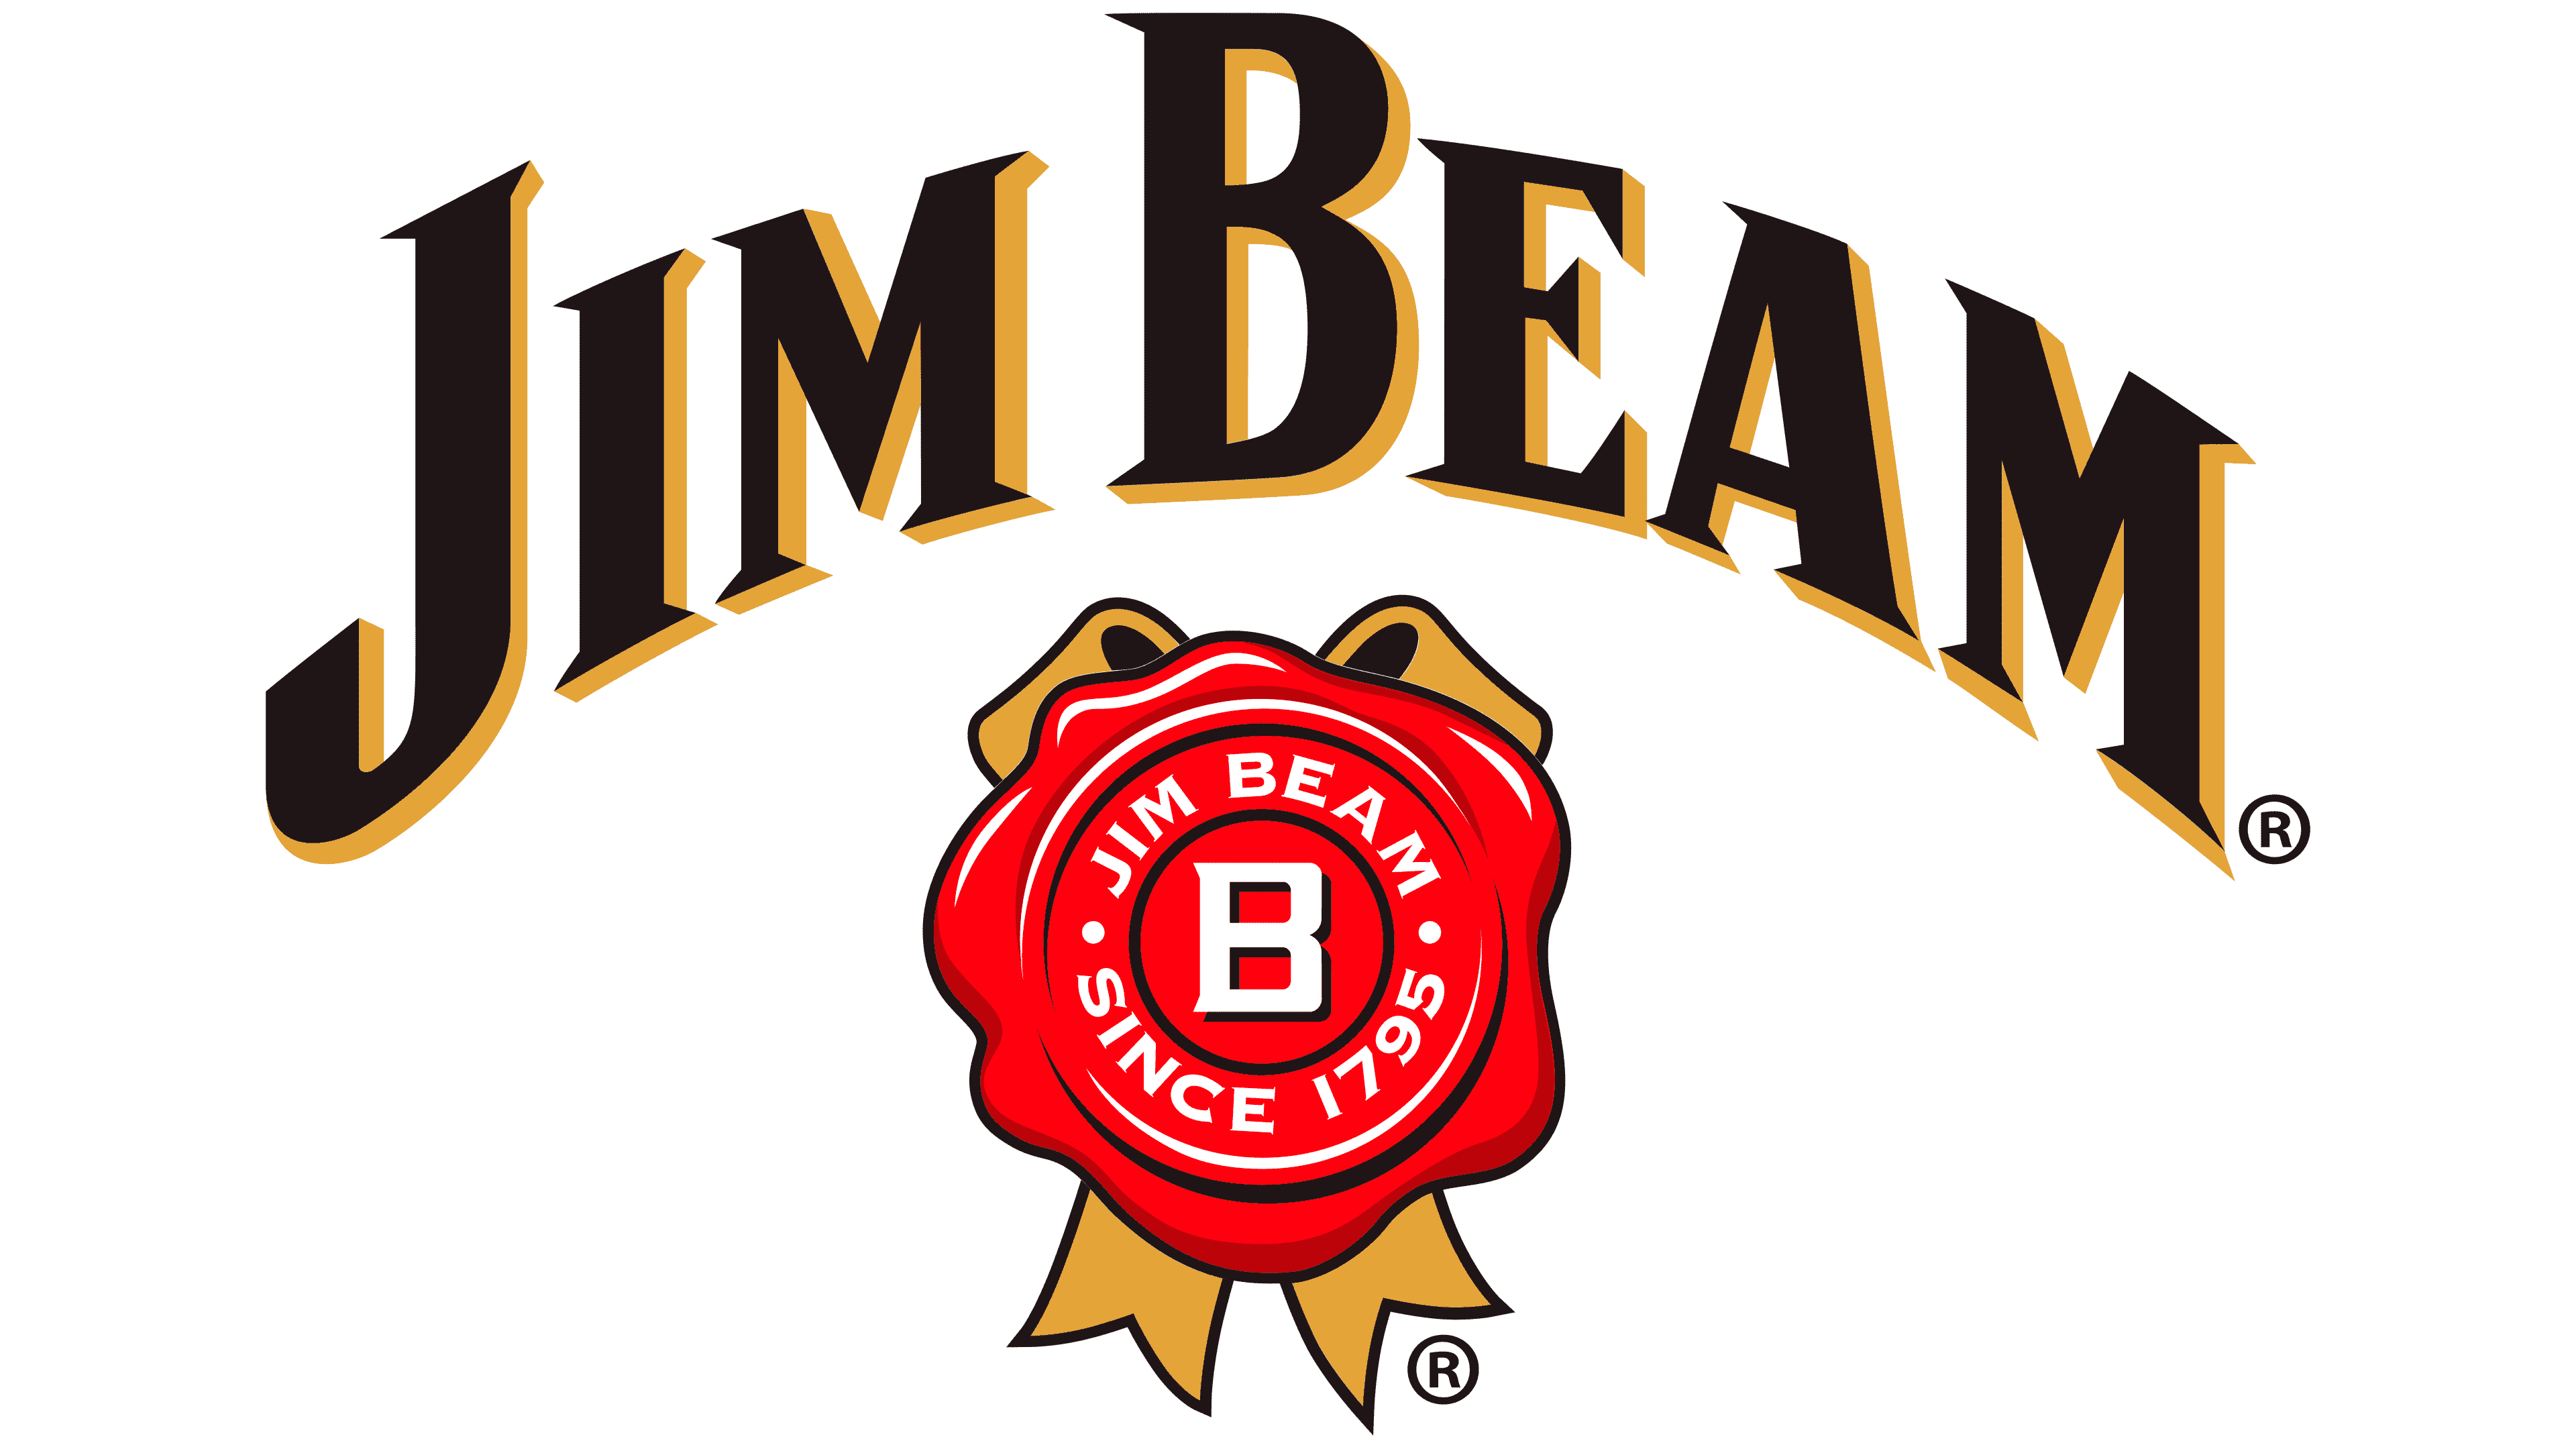 Jim Beam Logo | evolution history and meaning